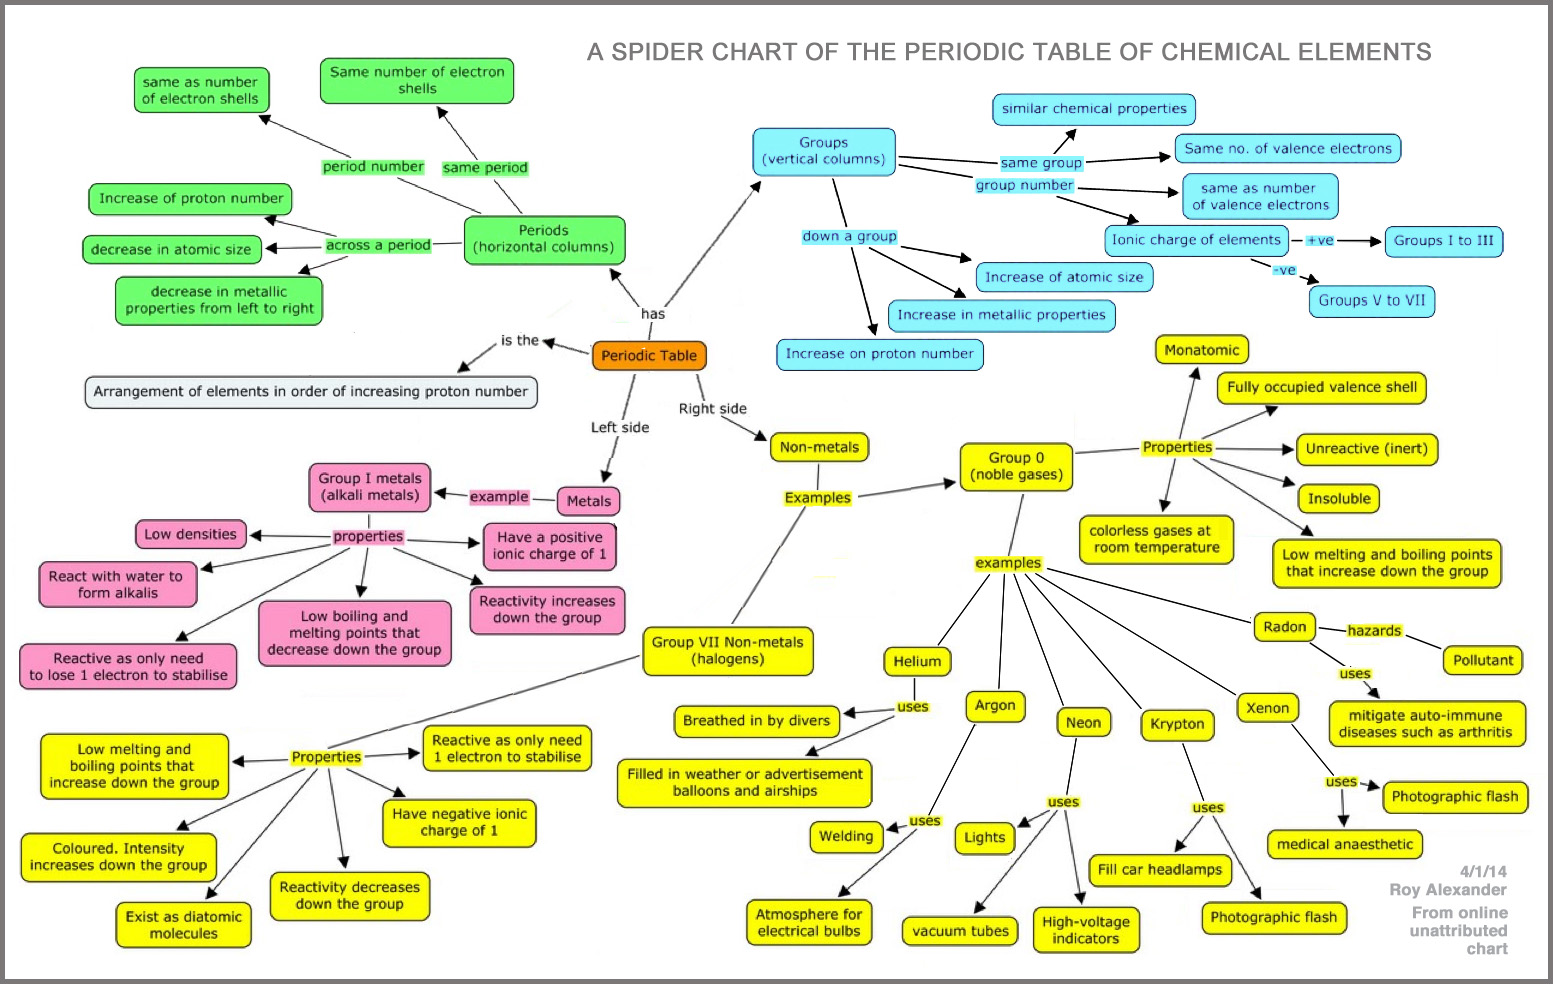 Periodic table database chemogenesis spider chart urtaz Image collections